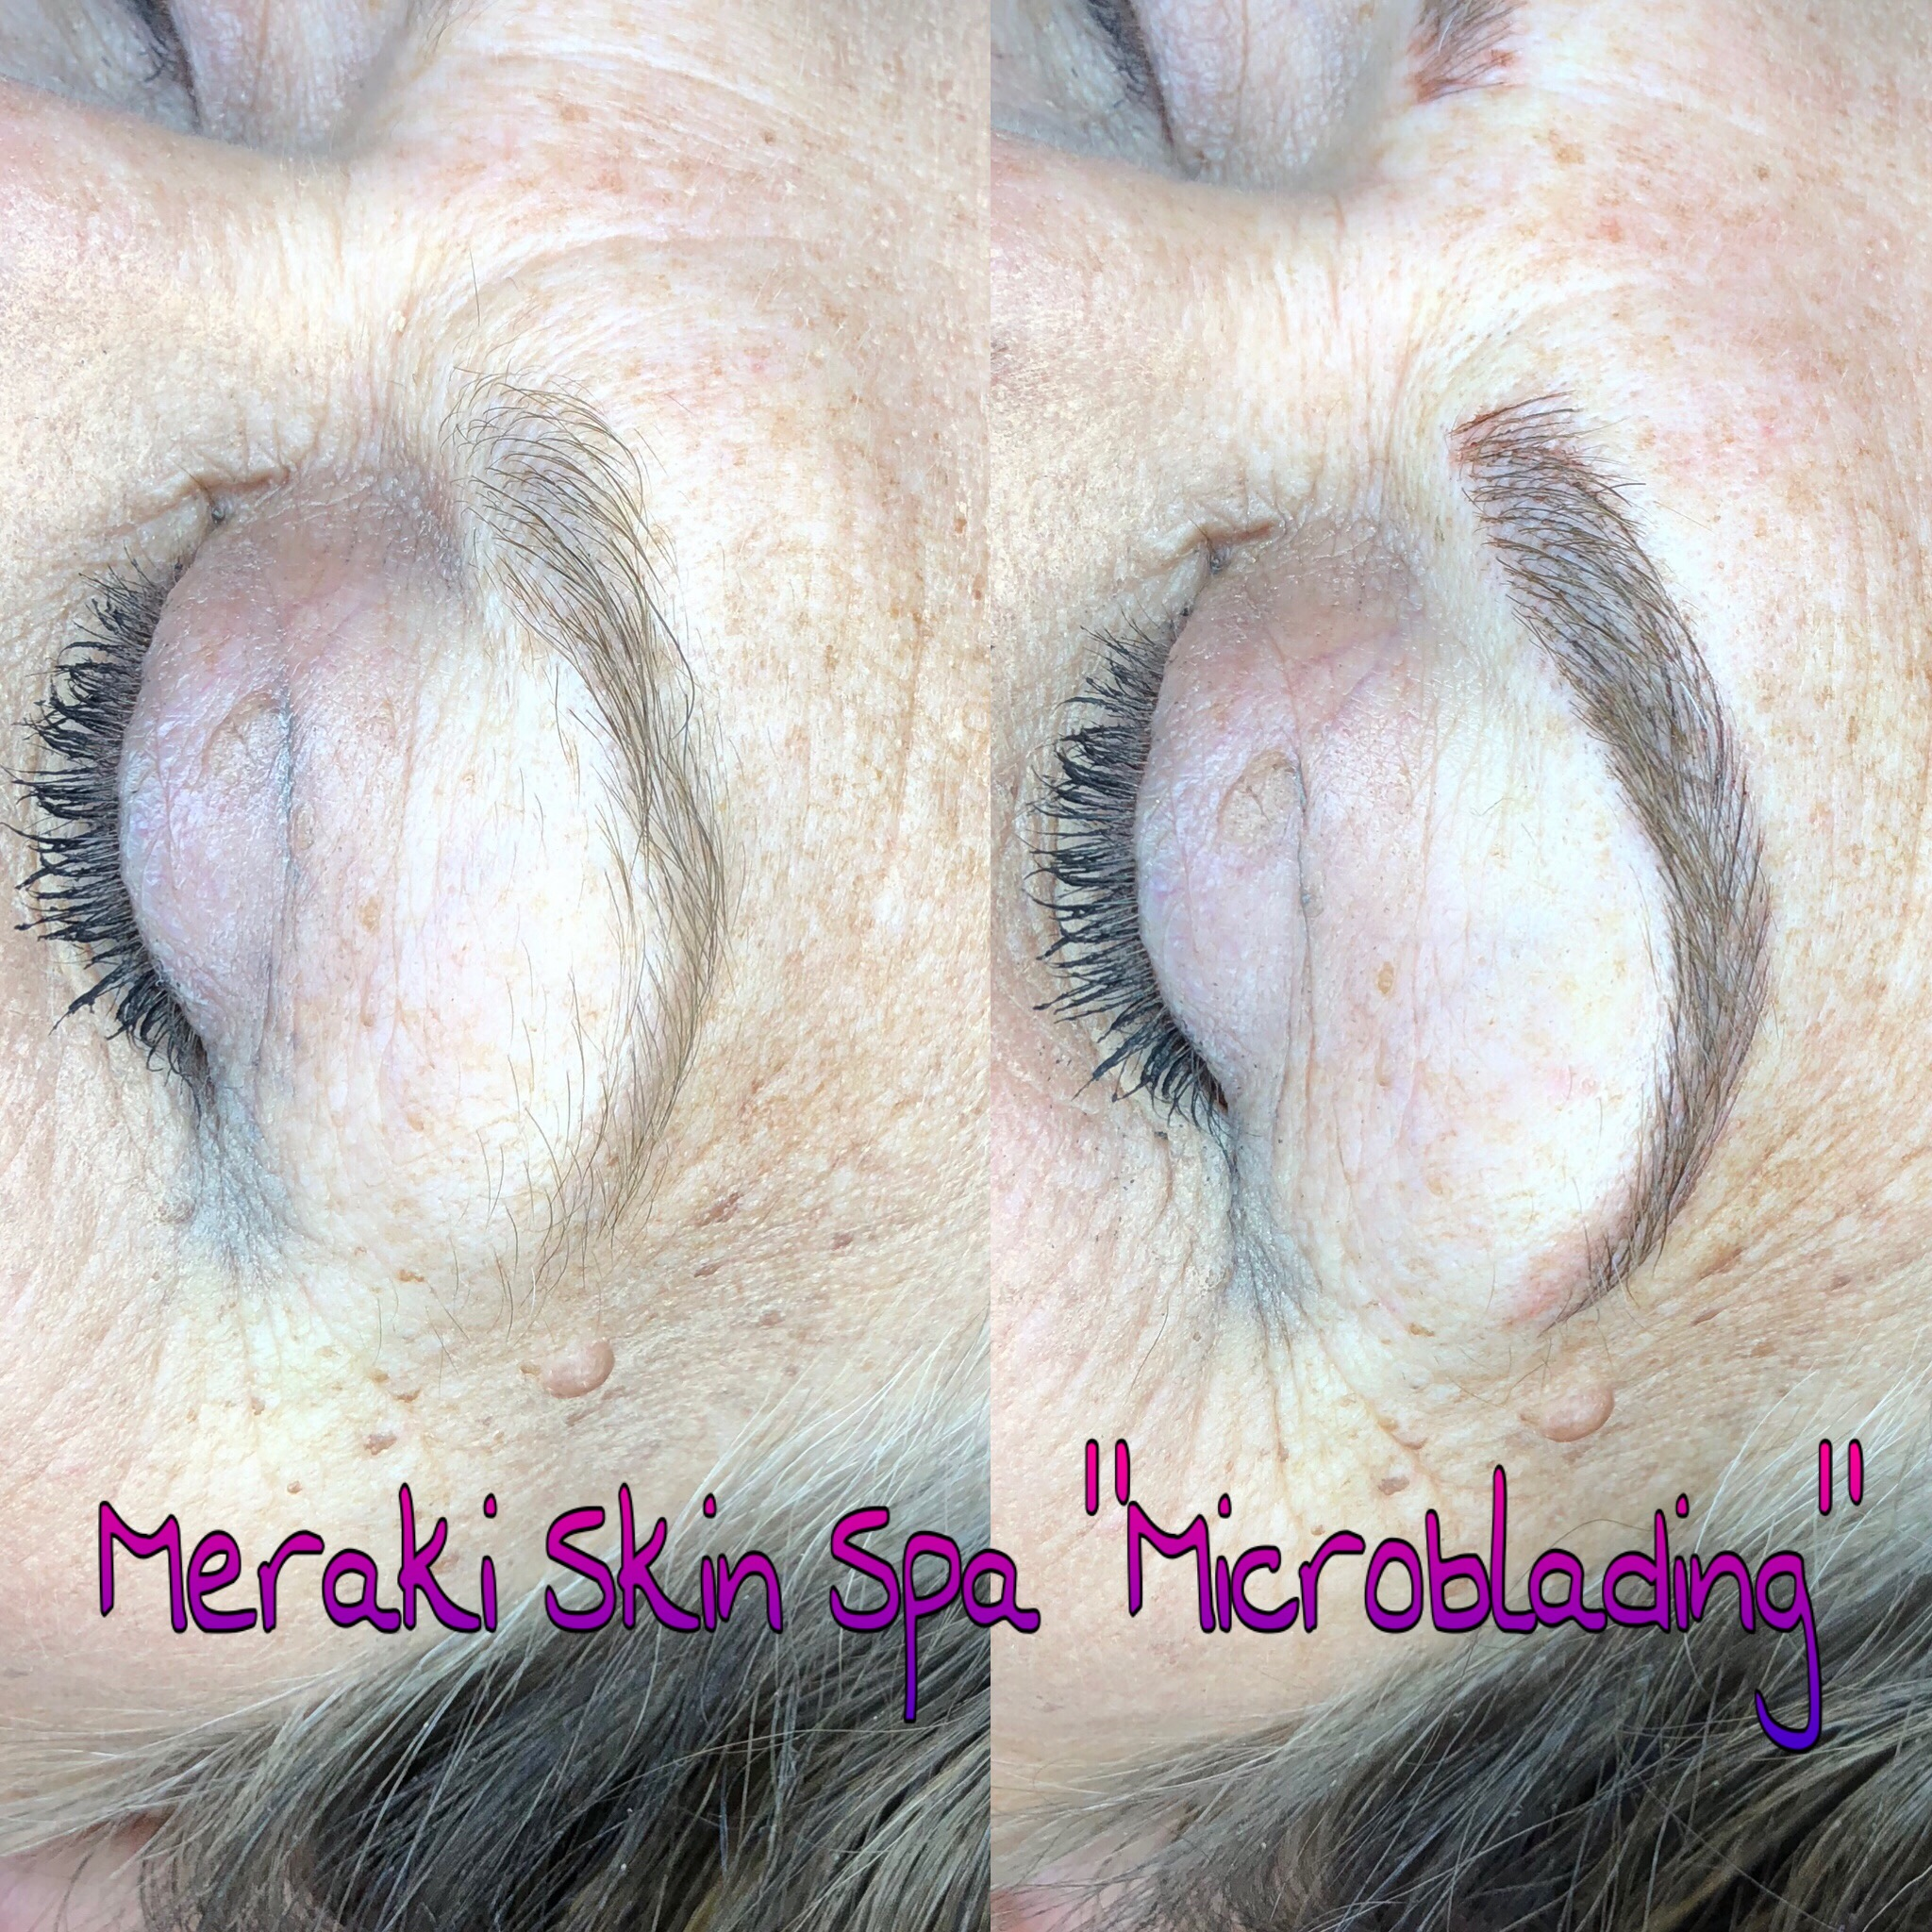 meridian Idaho - tattooed eyebrows - permanent cosmetics - microblading -alt text